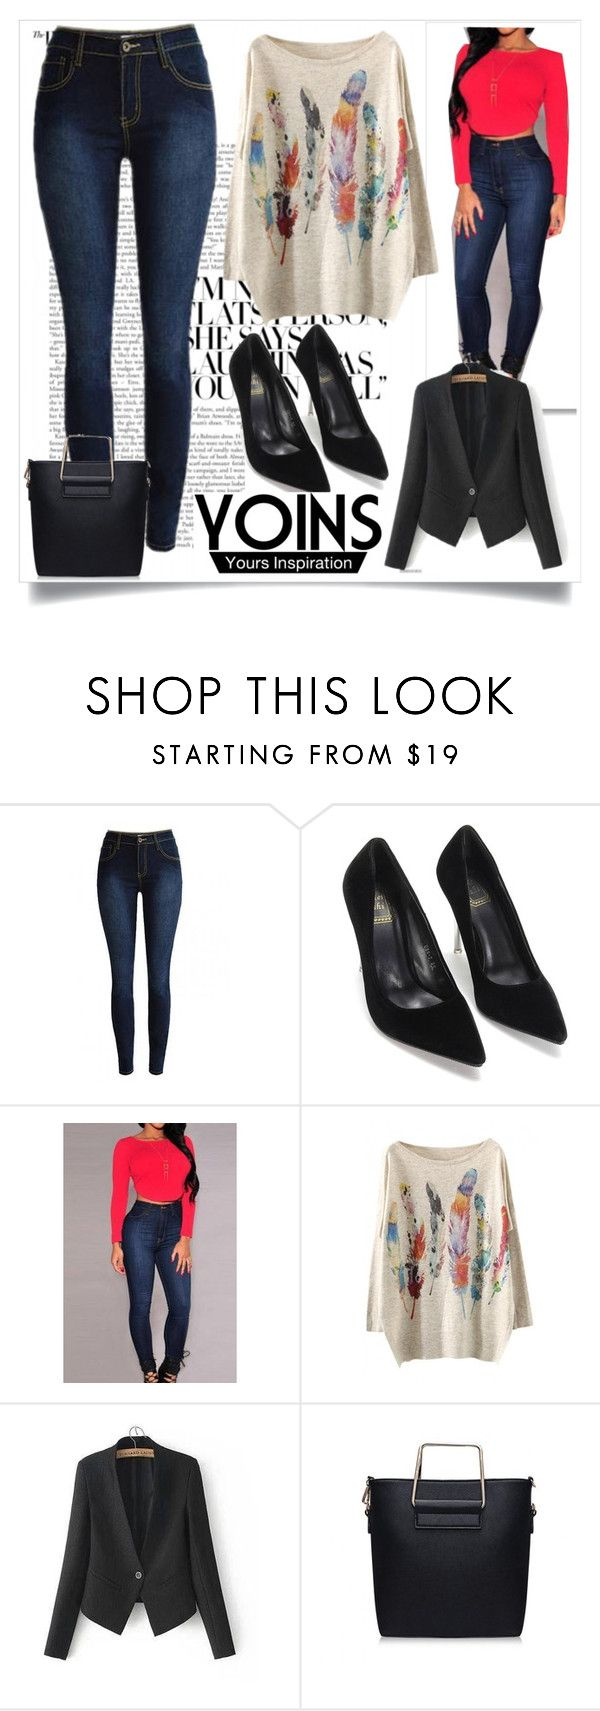 """JEANS  Yoins"" by mamiigou ❤ liked on Polyvore featuring yoins"